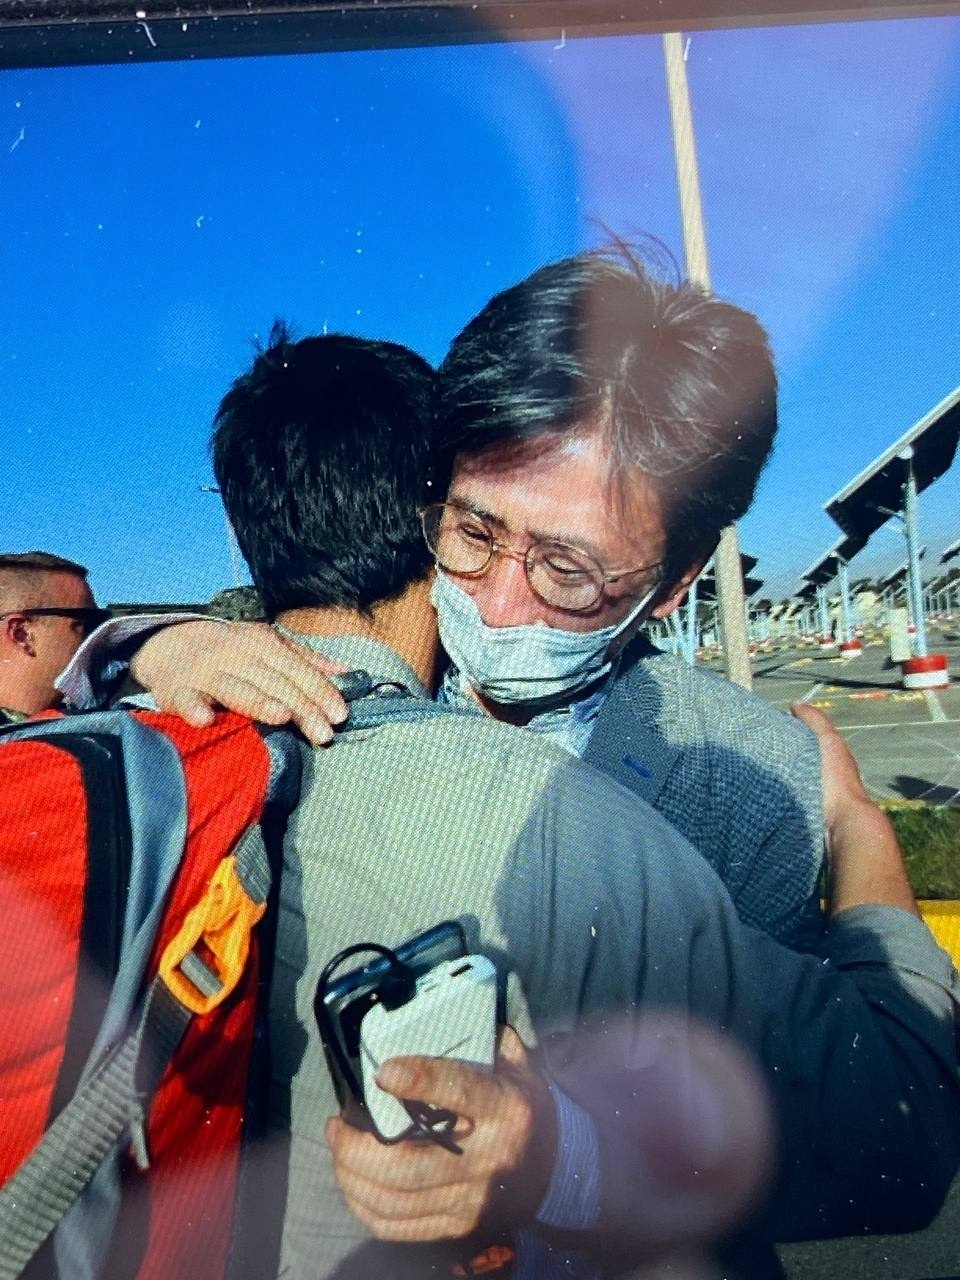 Minister Counselor Kim Il-eung of the South Korean Embassy in Kabul hugs an Afghan as he leads an evacuation mission, in this undated photo, released on Wednesday by the Foreign Ministry. (Yonhap)